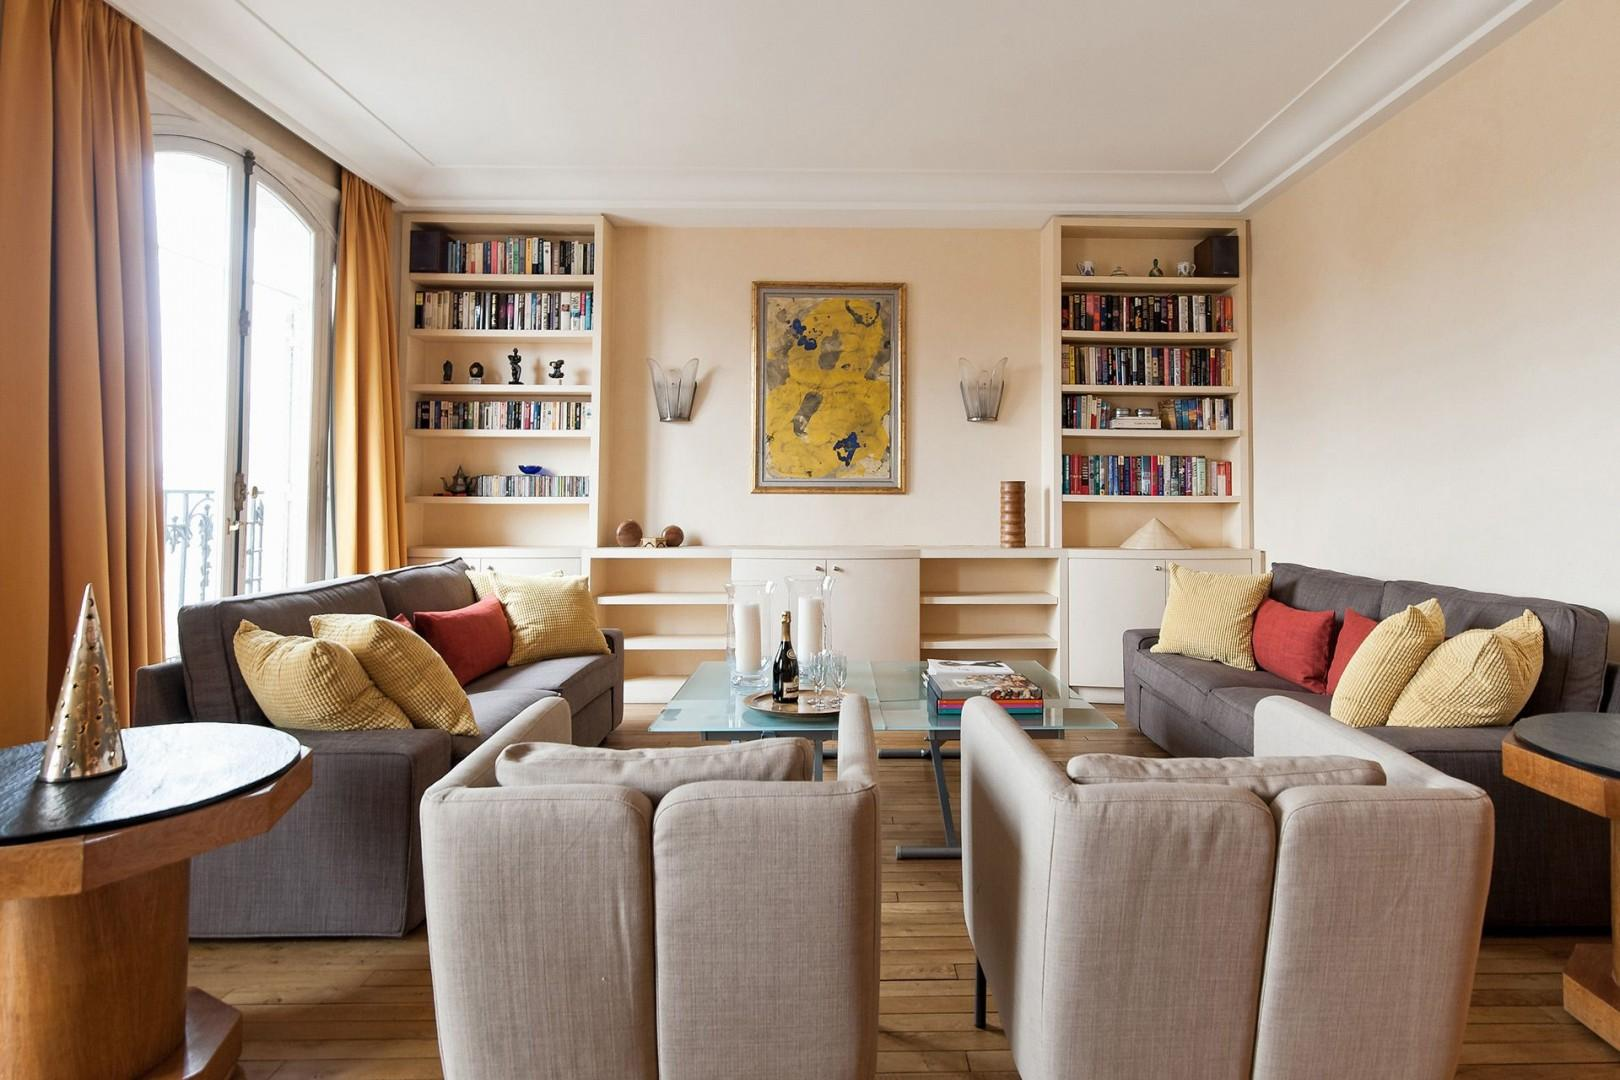 Relax in the cozy living room after a day of sightseeing.